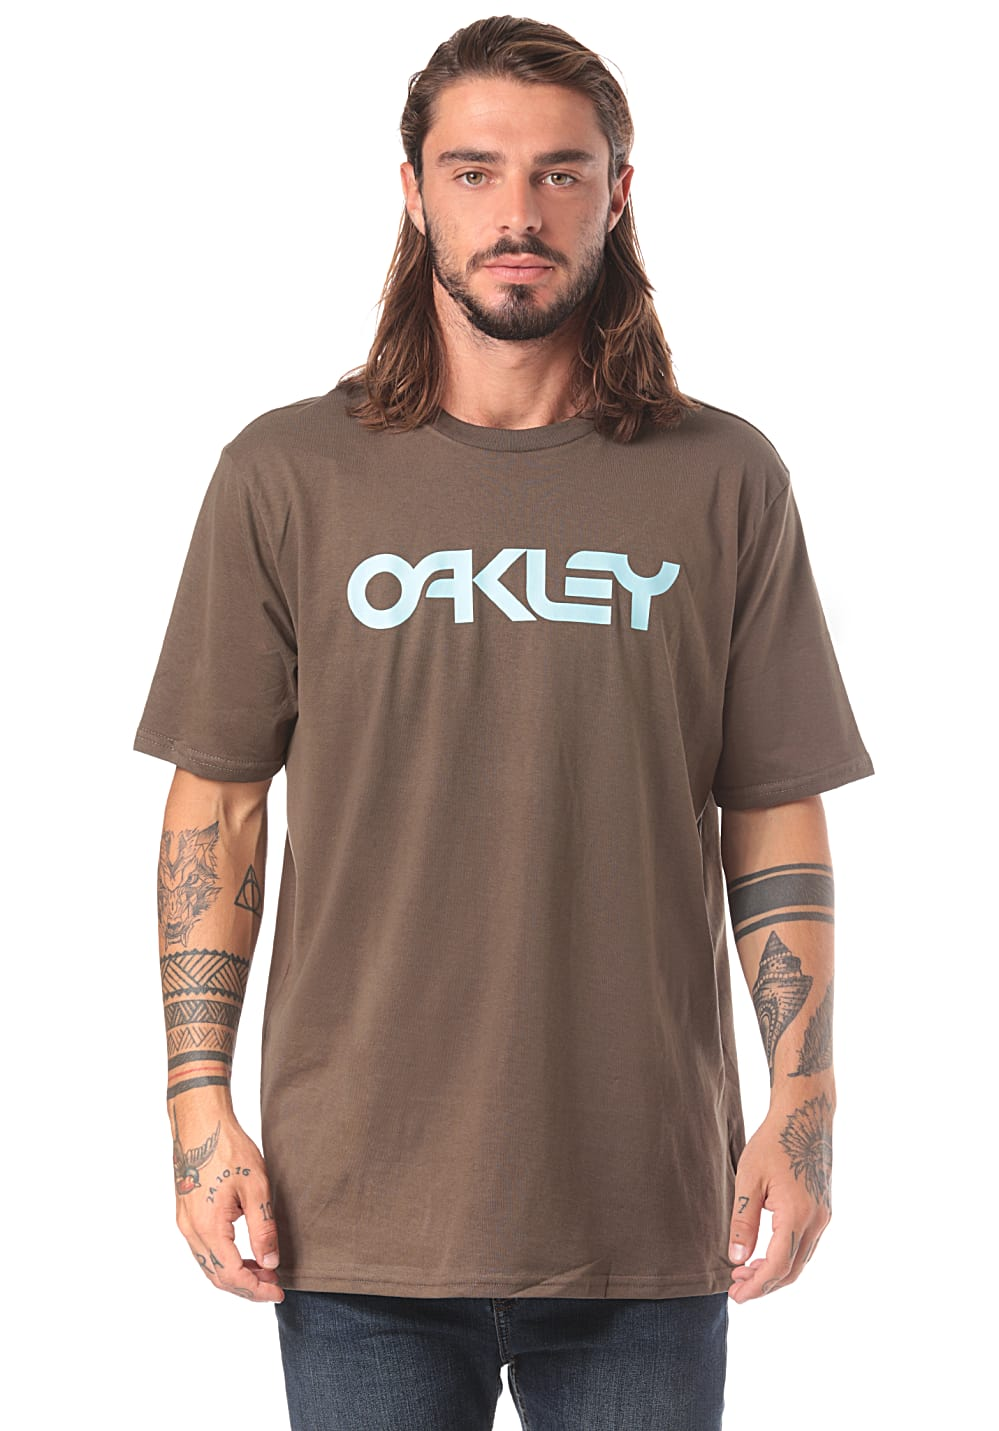 ... OAKLEY Mark II - T-Shirt for Men - Brown. Back to Overview. 1  2.  Previous d1d2c458505c